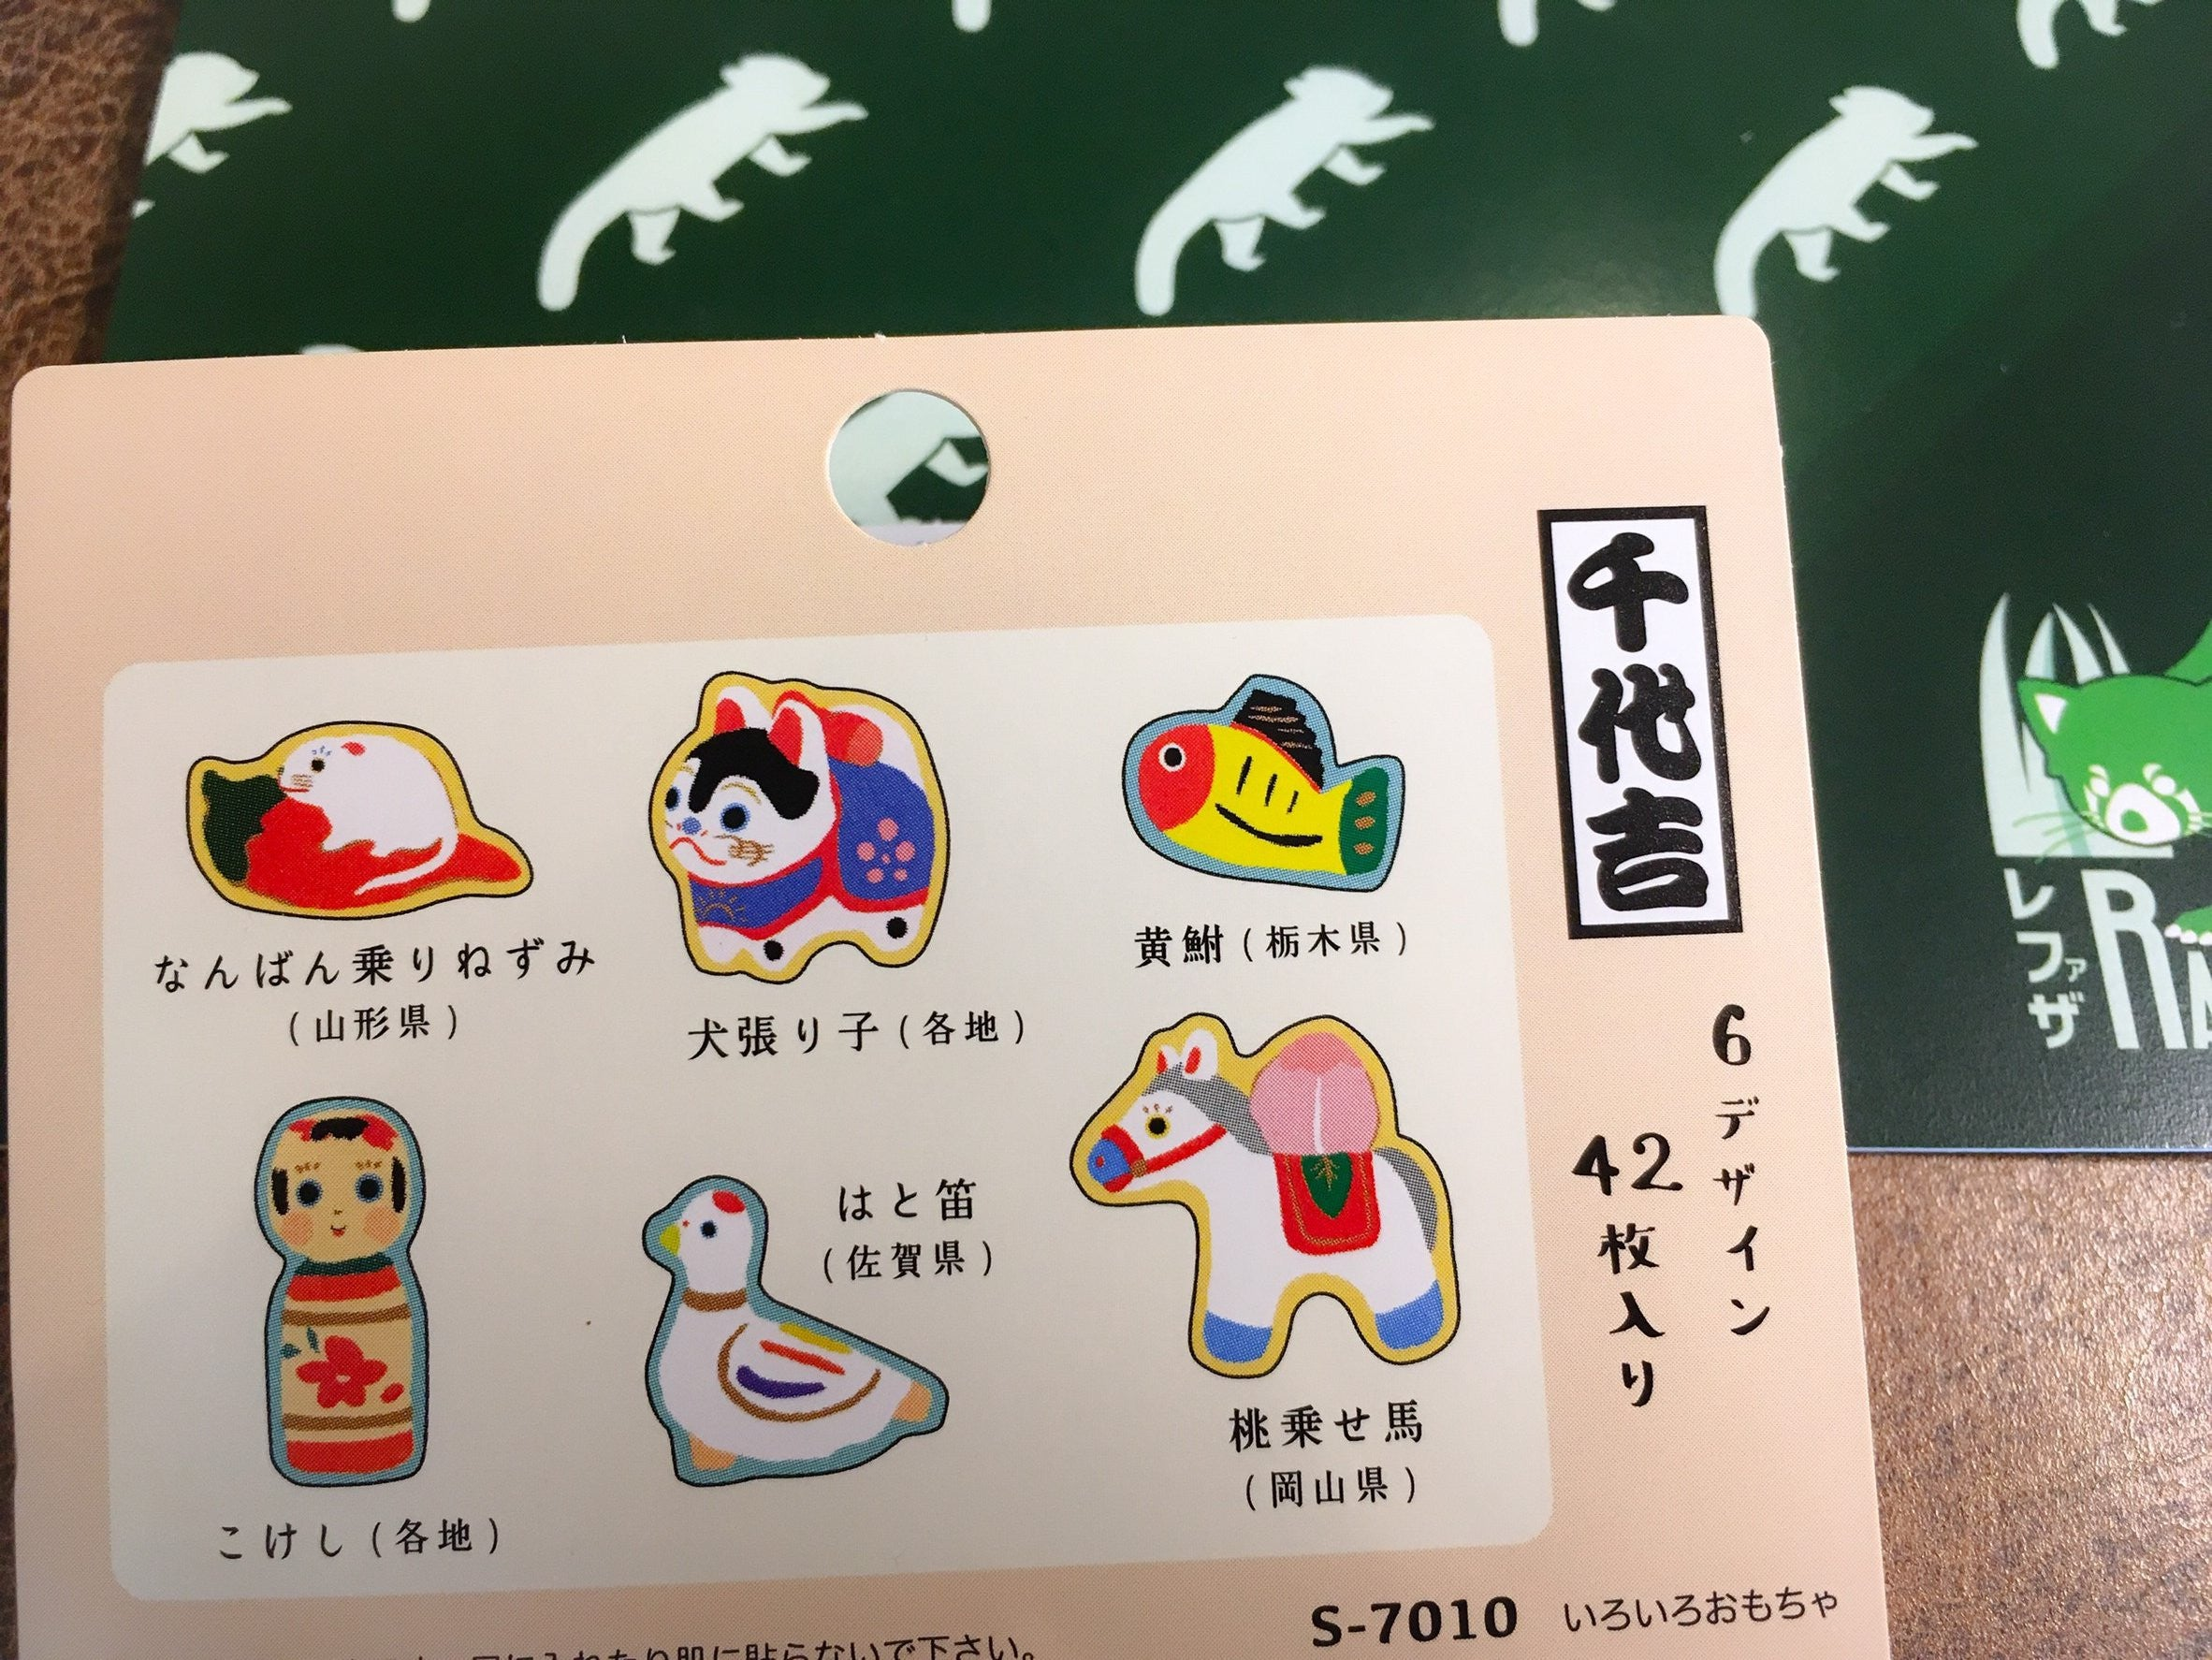 Japan Folk Toys Mini Stickers (Seal Flake) 42-piece set | RARE FIND ZAKKA